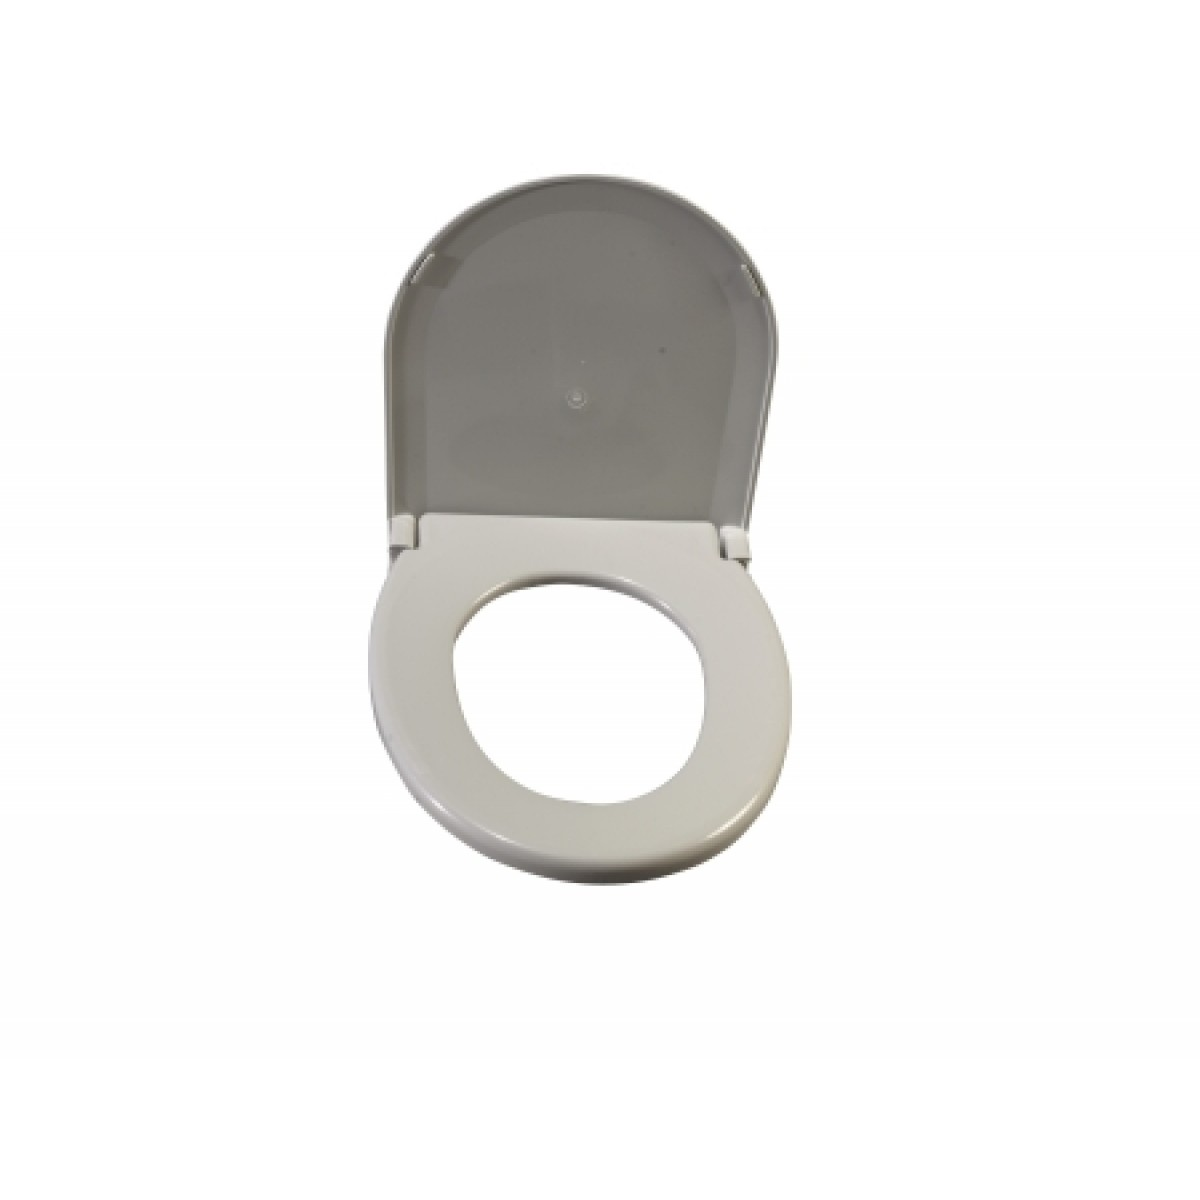 Oblong Oversized Toilet Seat 16 1 2 Inch D 11160 1